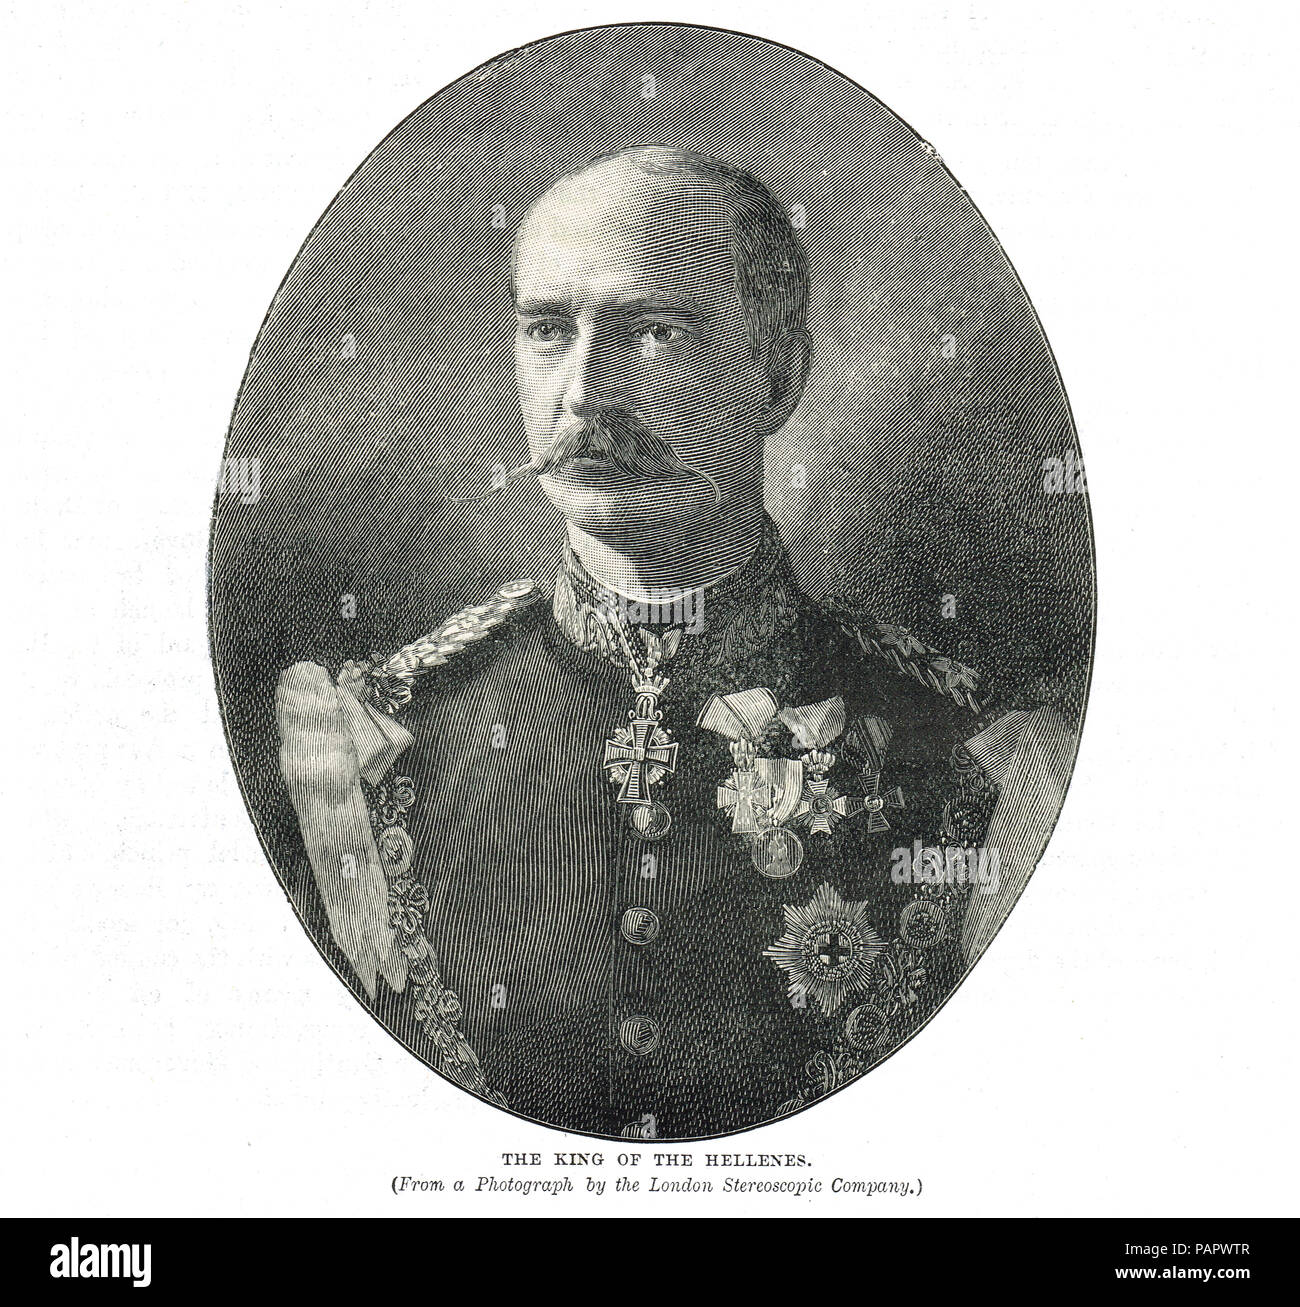 George I of Greece, King of the Hellenes, born Prince William of Schleswig-Holstein-Sonderburg-Glücksburg, King of Greece from 1863 until his assassination in 1913 - Stock Image